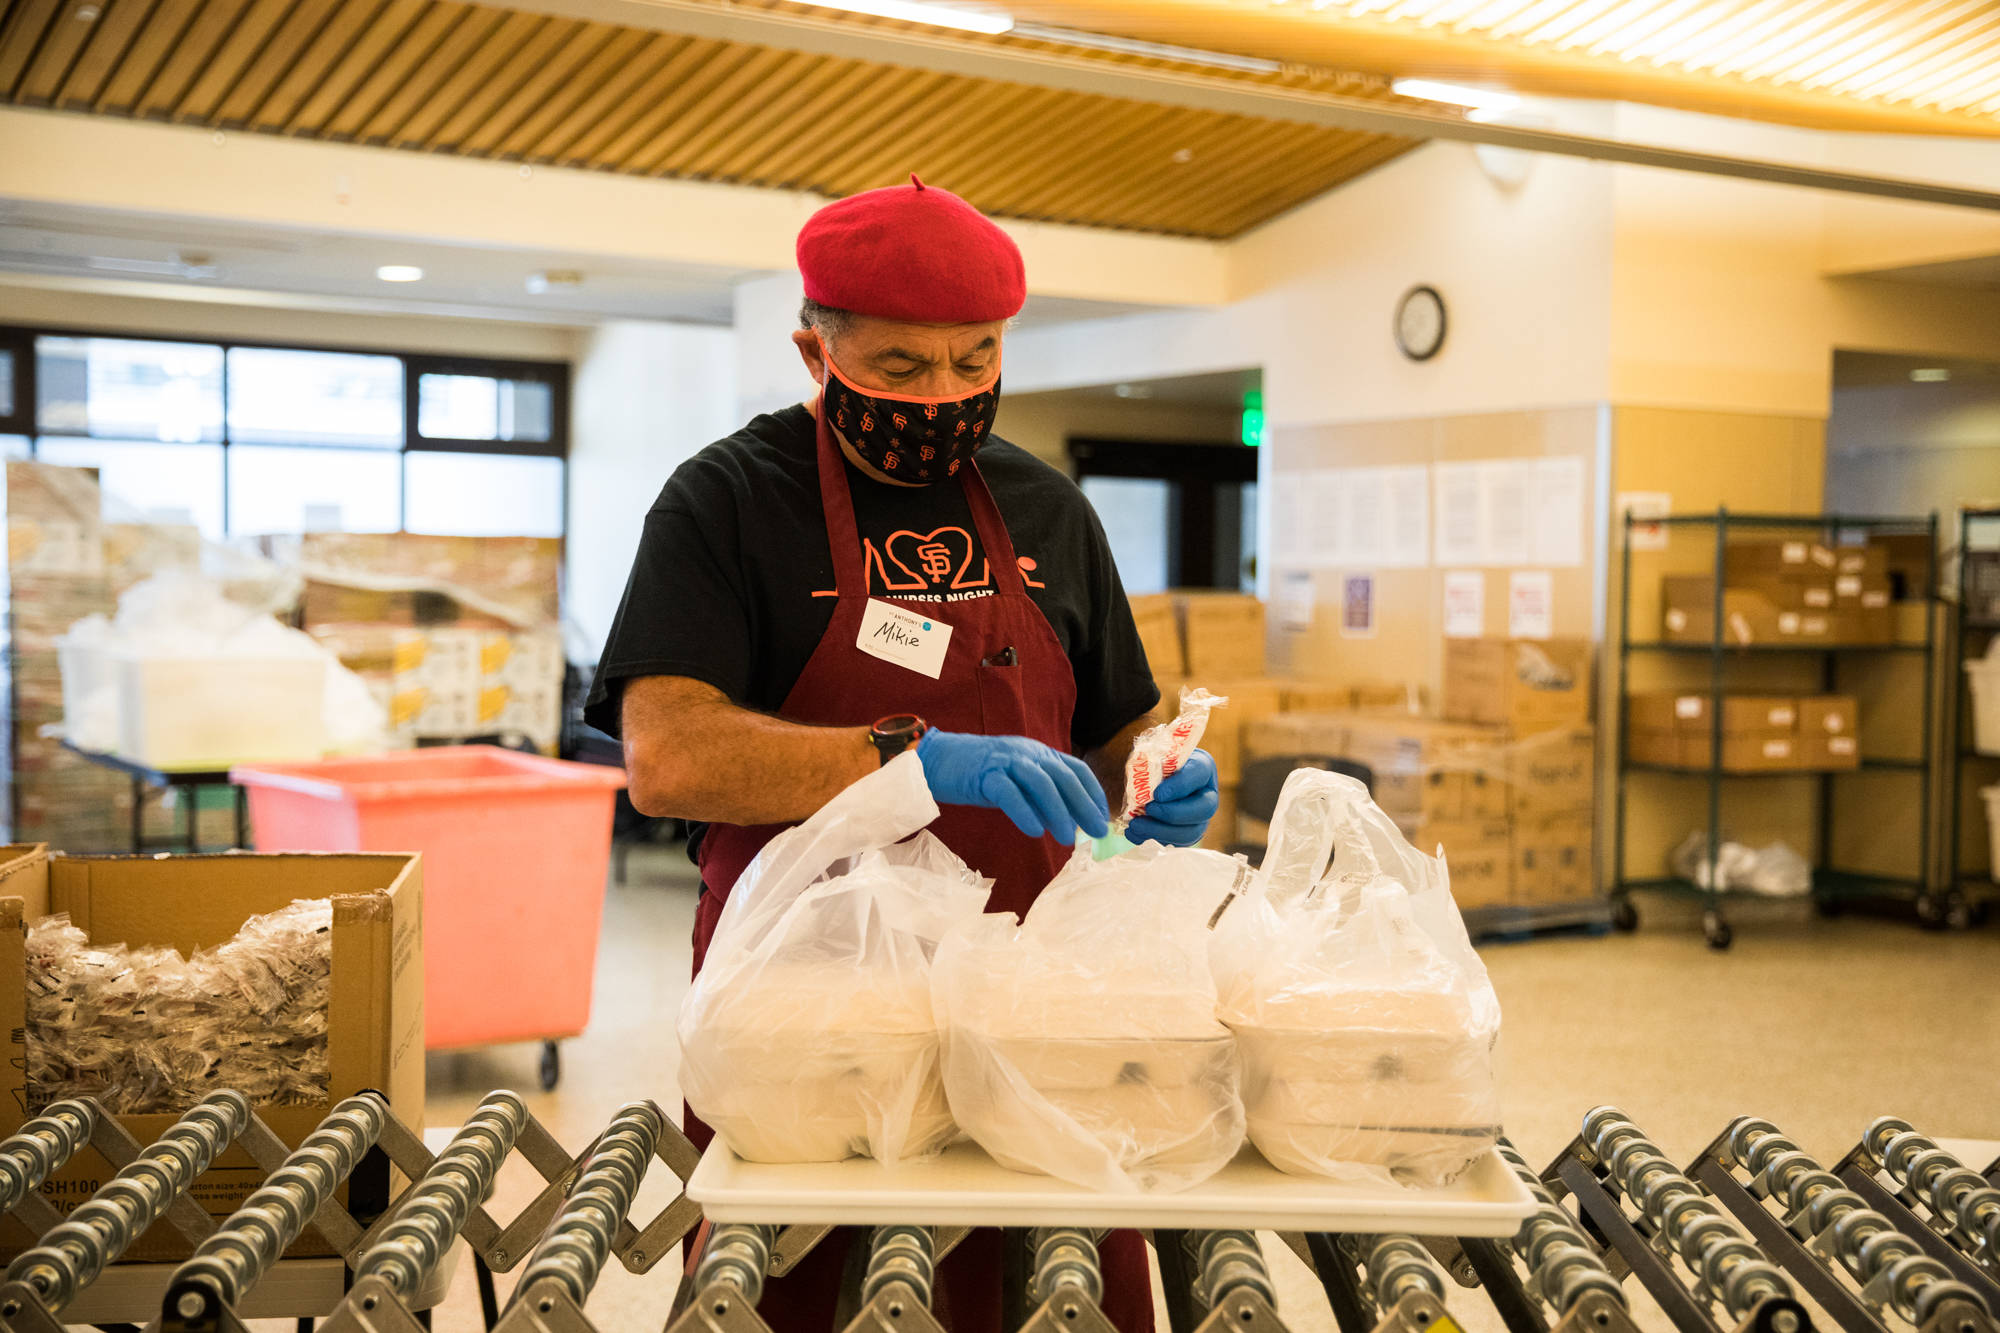 A volunteer prepares freshly cooked meals for curbside pickup at St. Anthony Foundation in the Tenderloin. (Photo by Ekevara Kitpowsong/Special to S.F. Examiner)